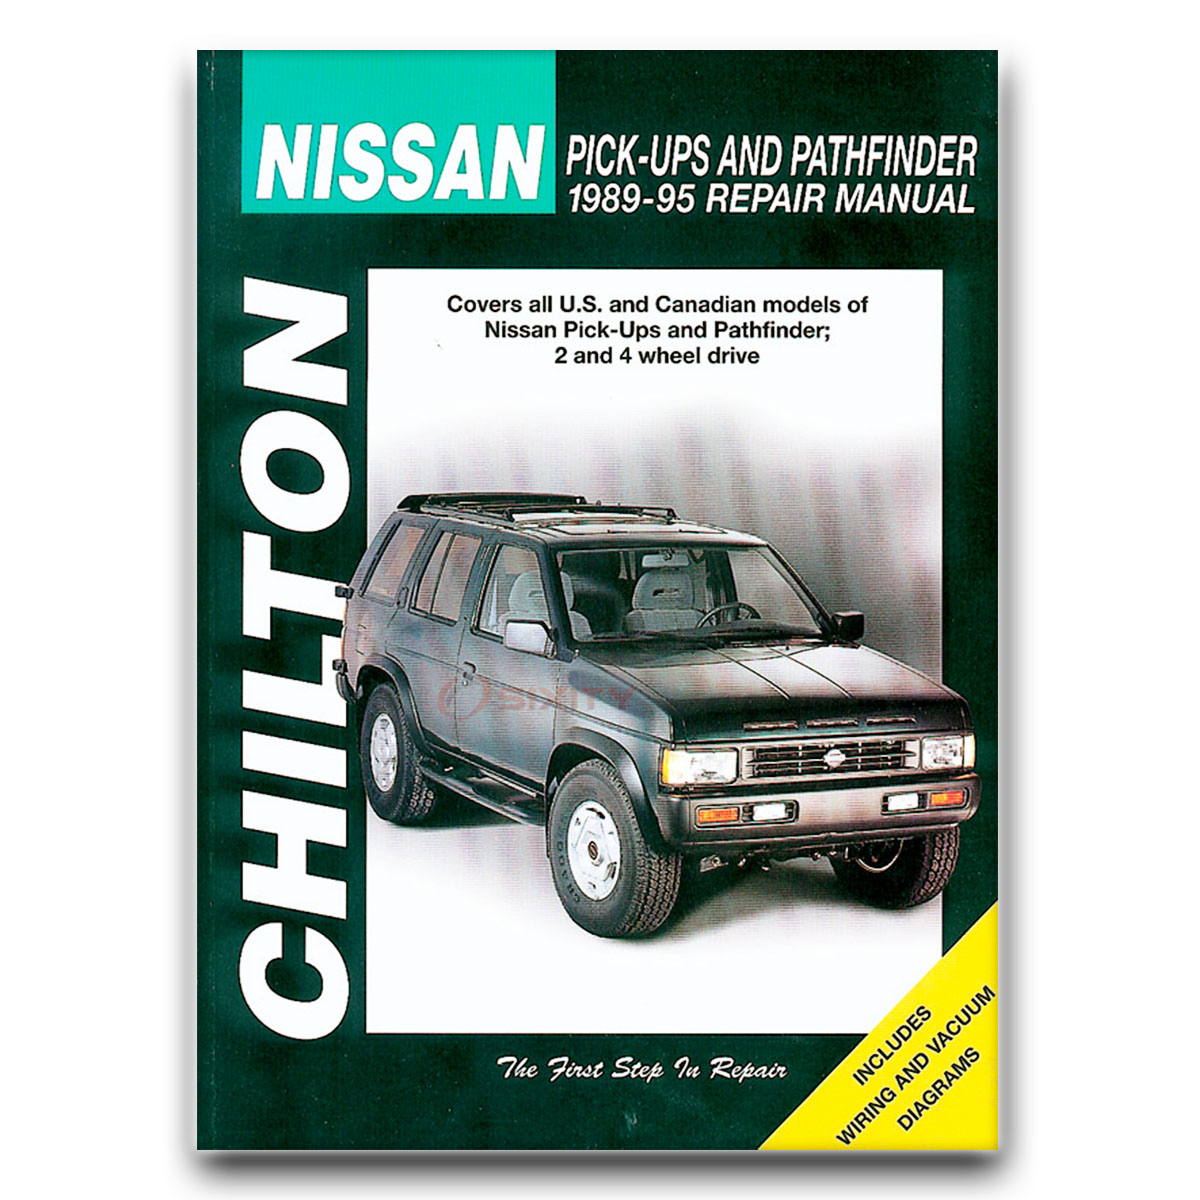 chilton repair manual for nissan d21 base se xe shop service garage rh ebay  com 2005 Nissan Pathfinder Service Manual 2004 Nissan Quest Repair Manual